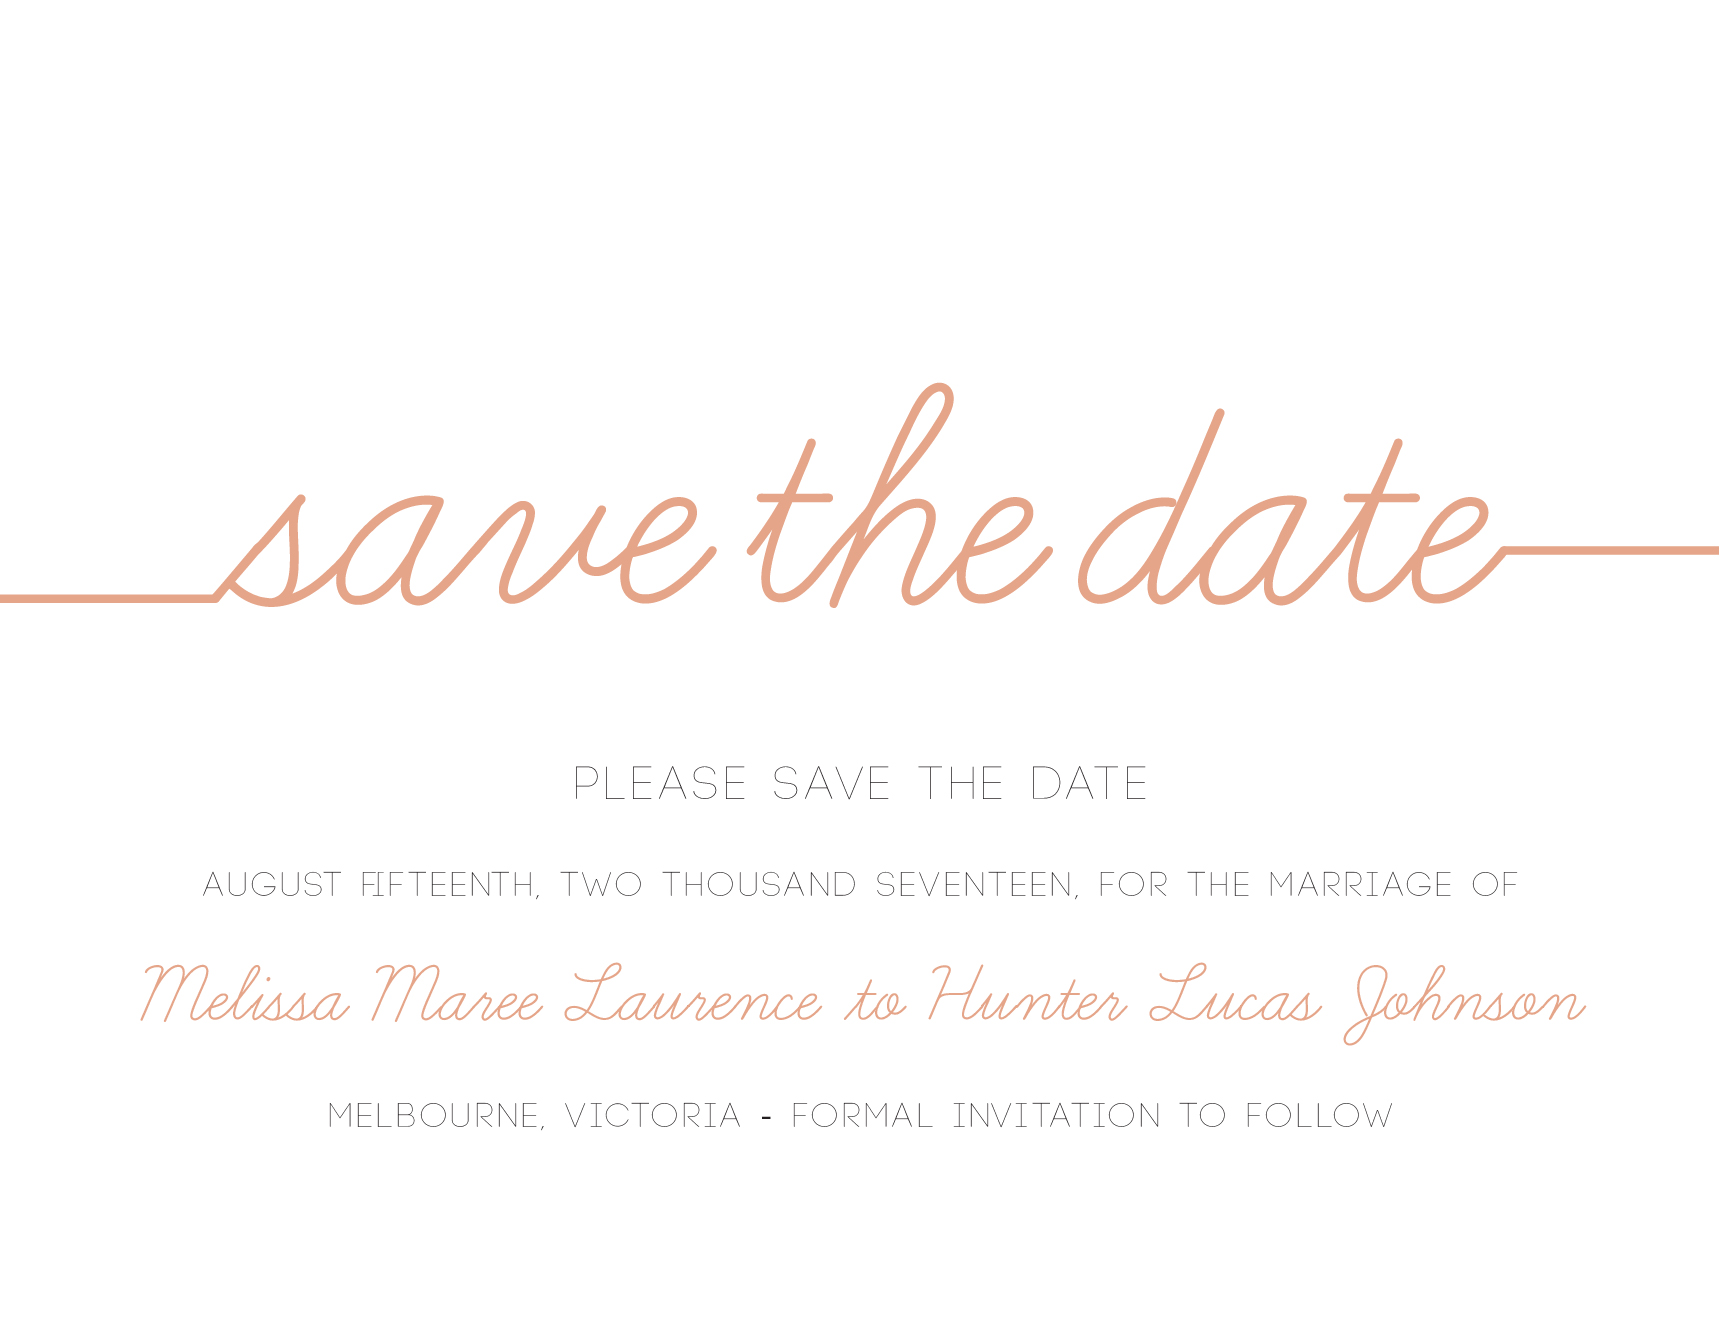 cursive digital printing save the date